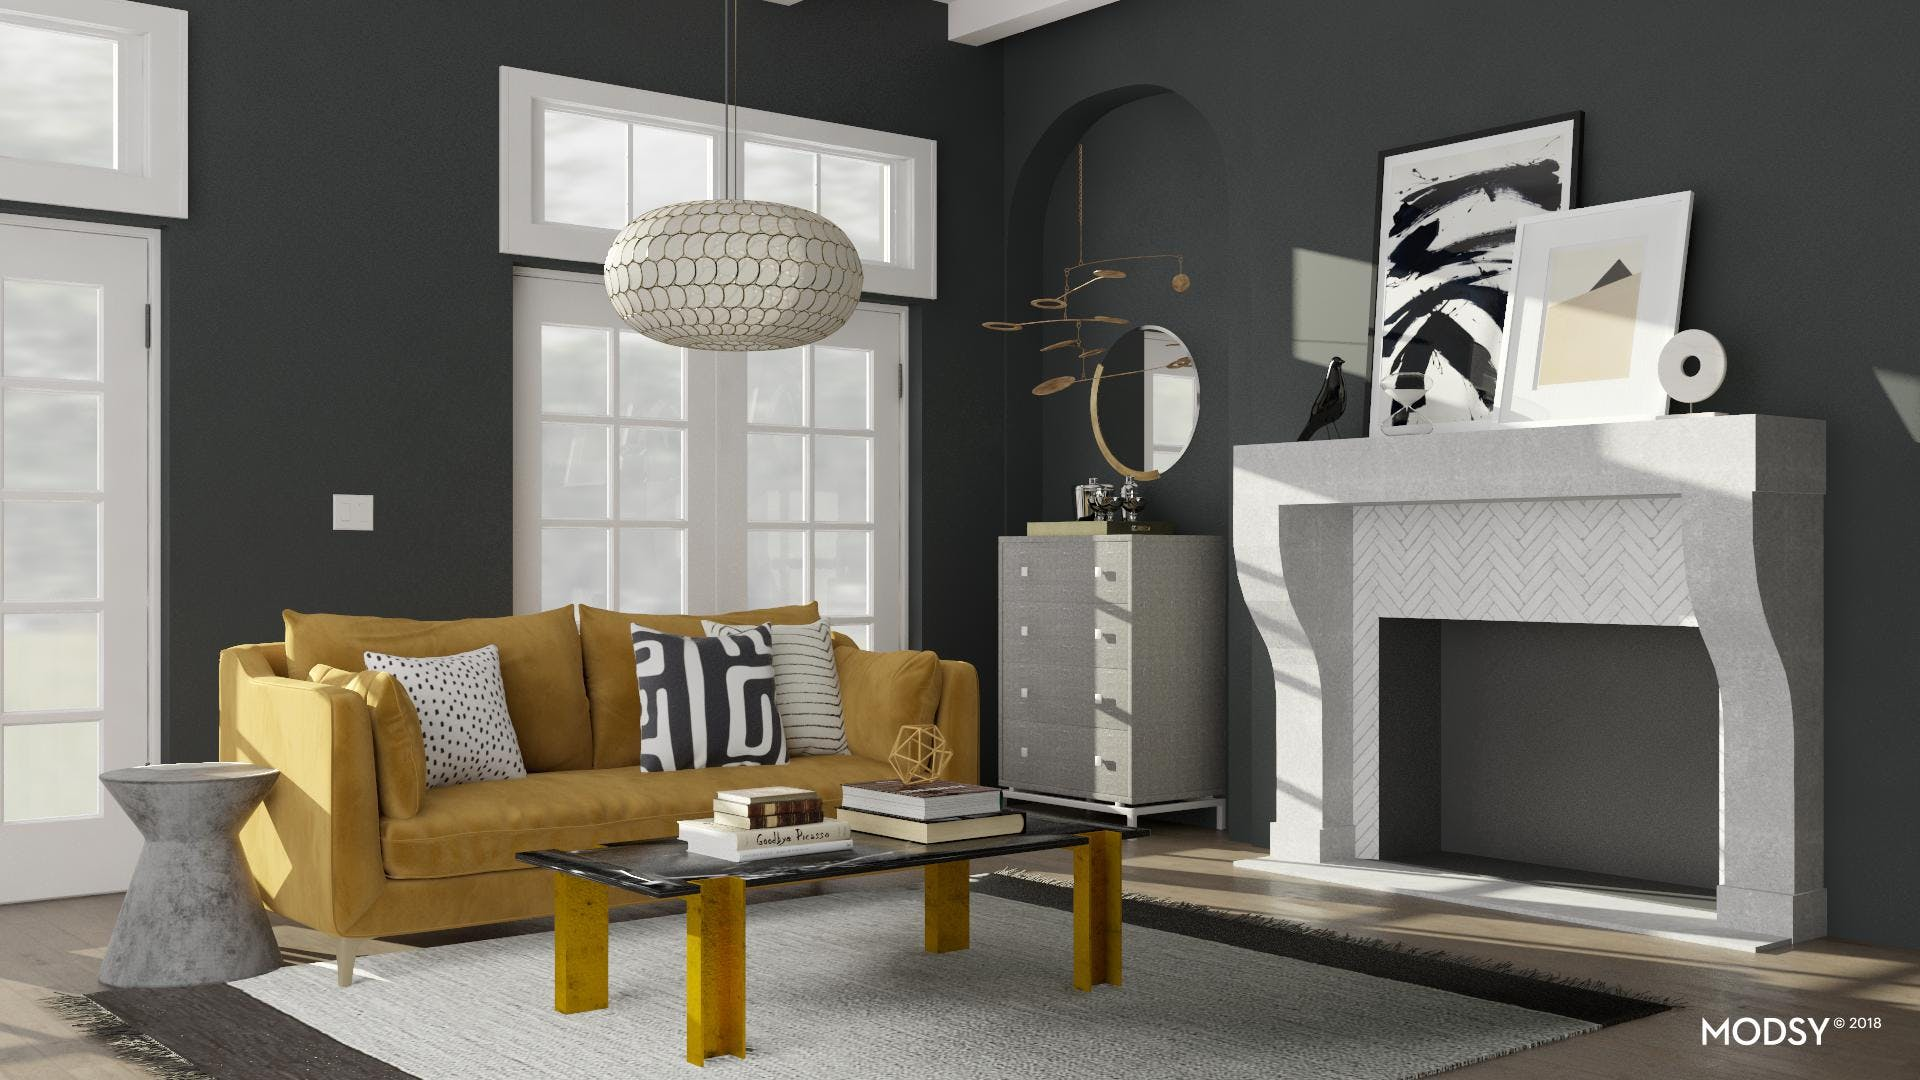 A Living Room Full Of Yellows And Grays